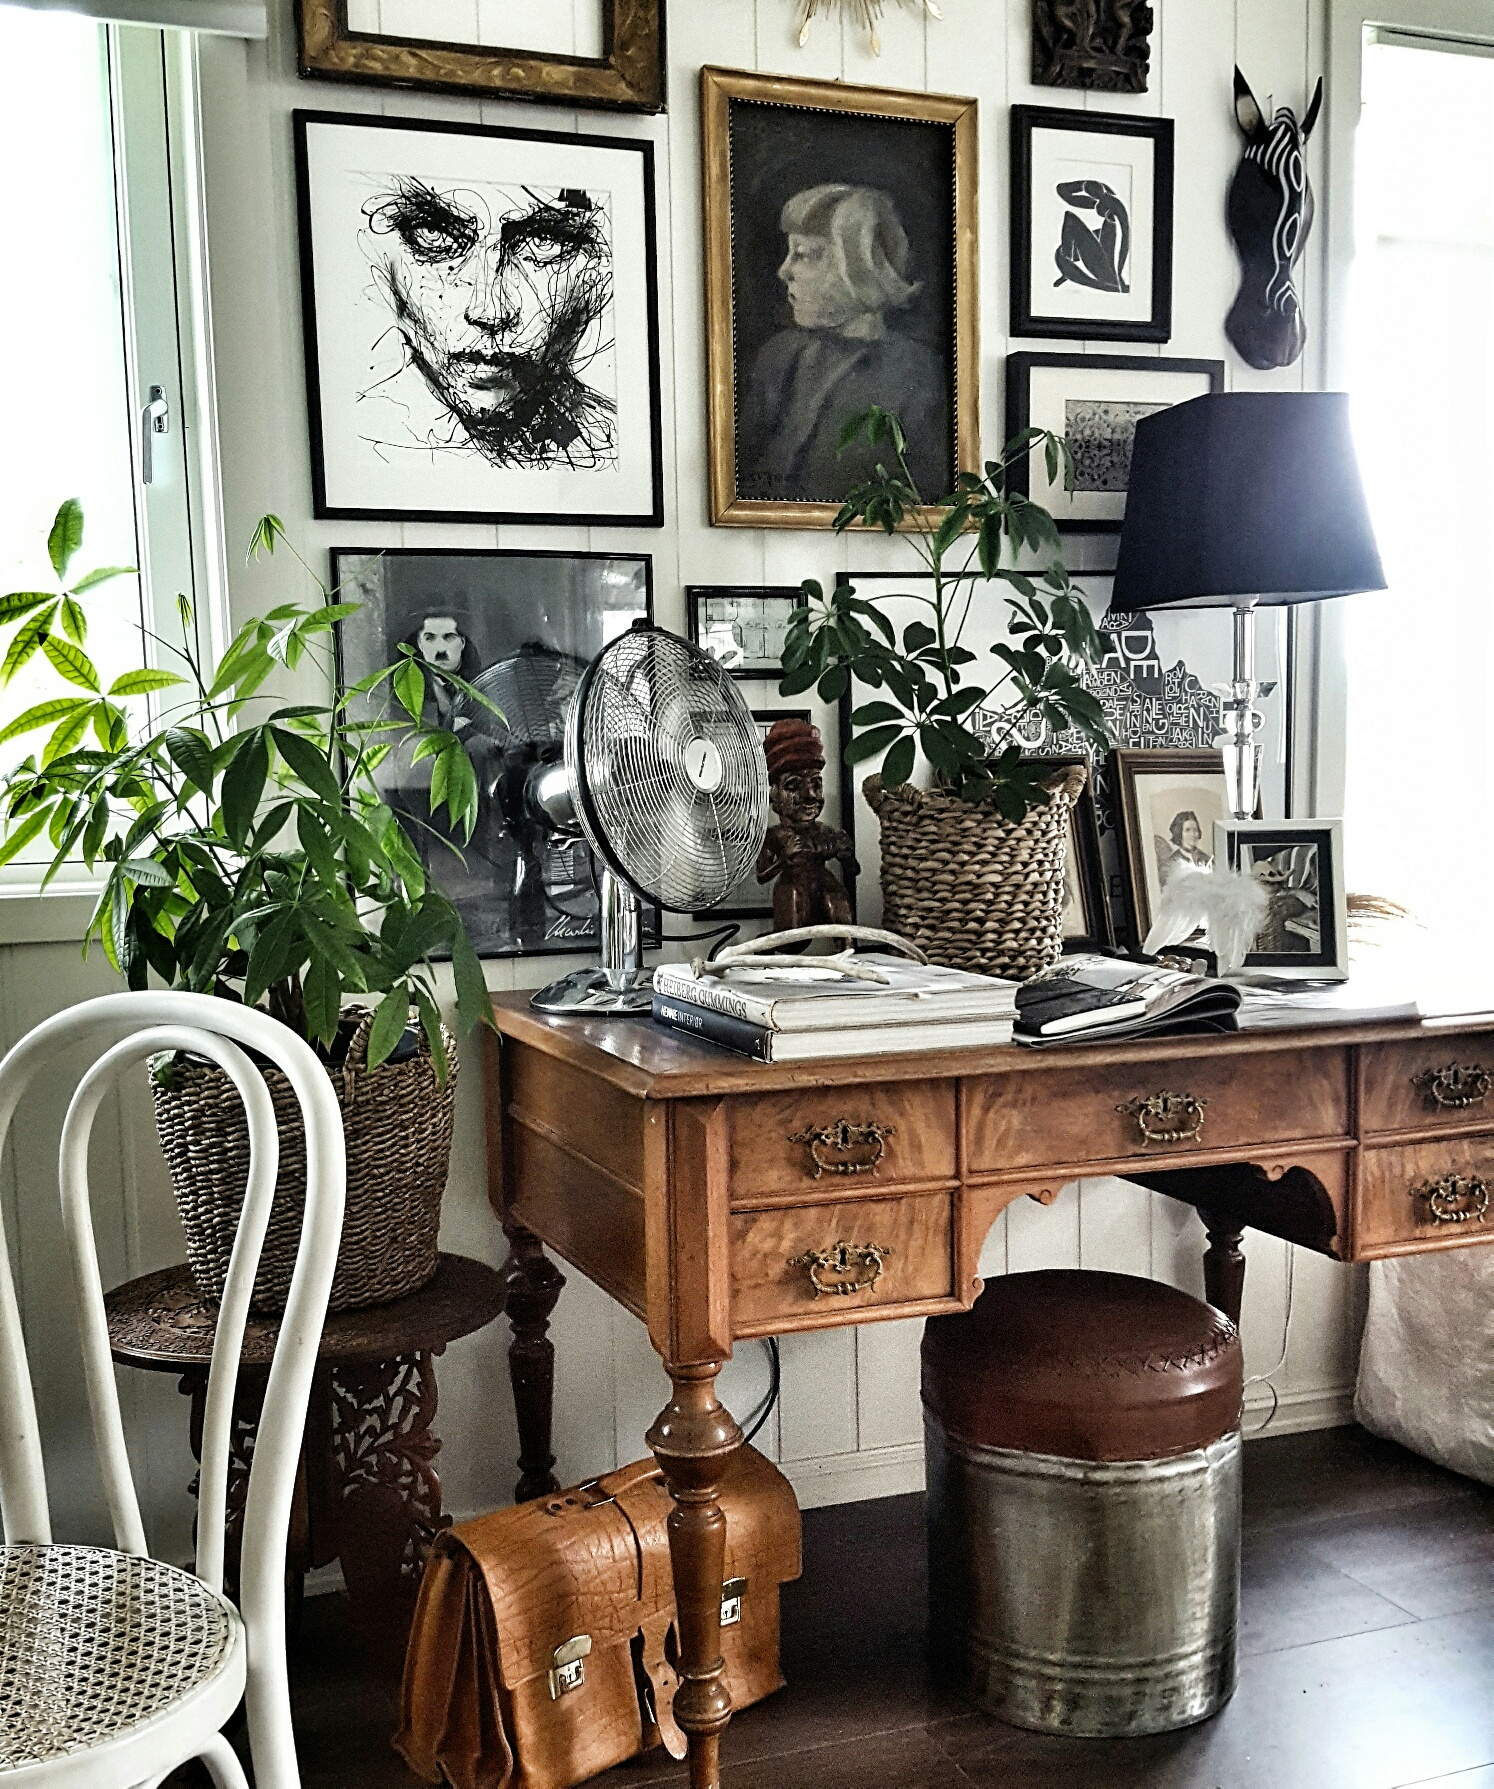 A stunning Gallery wall, art features all over this house.